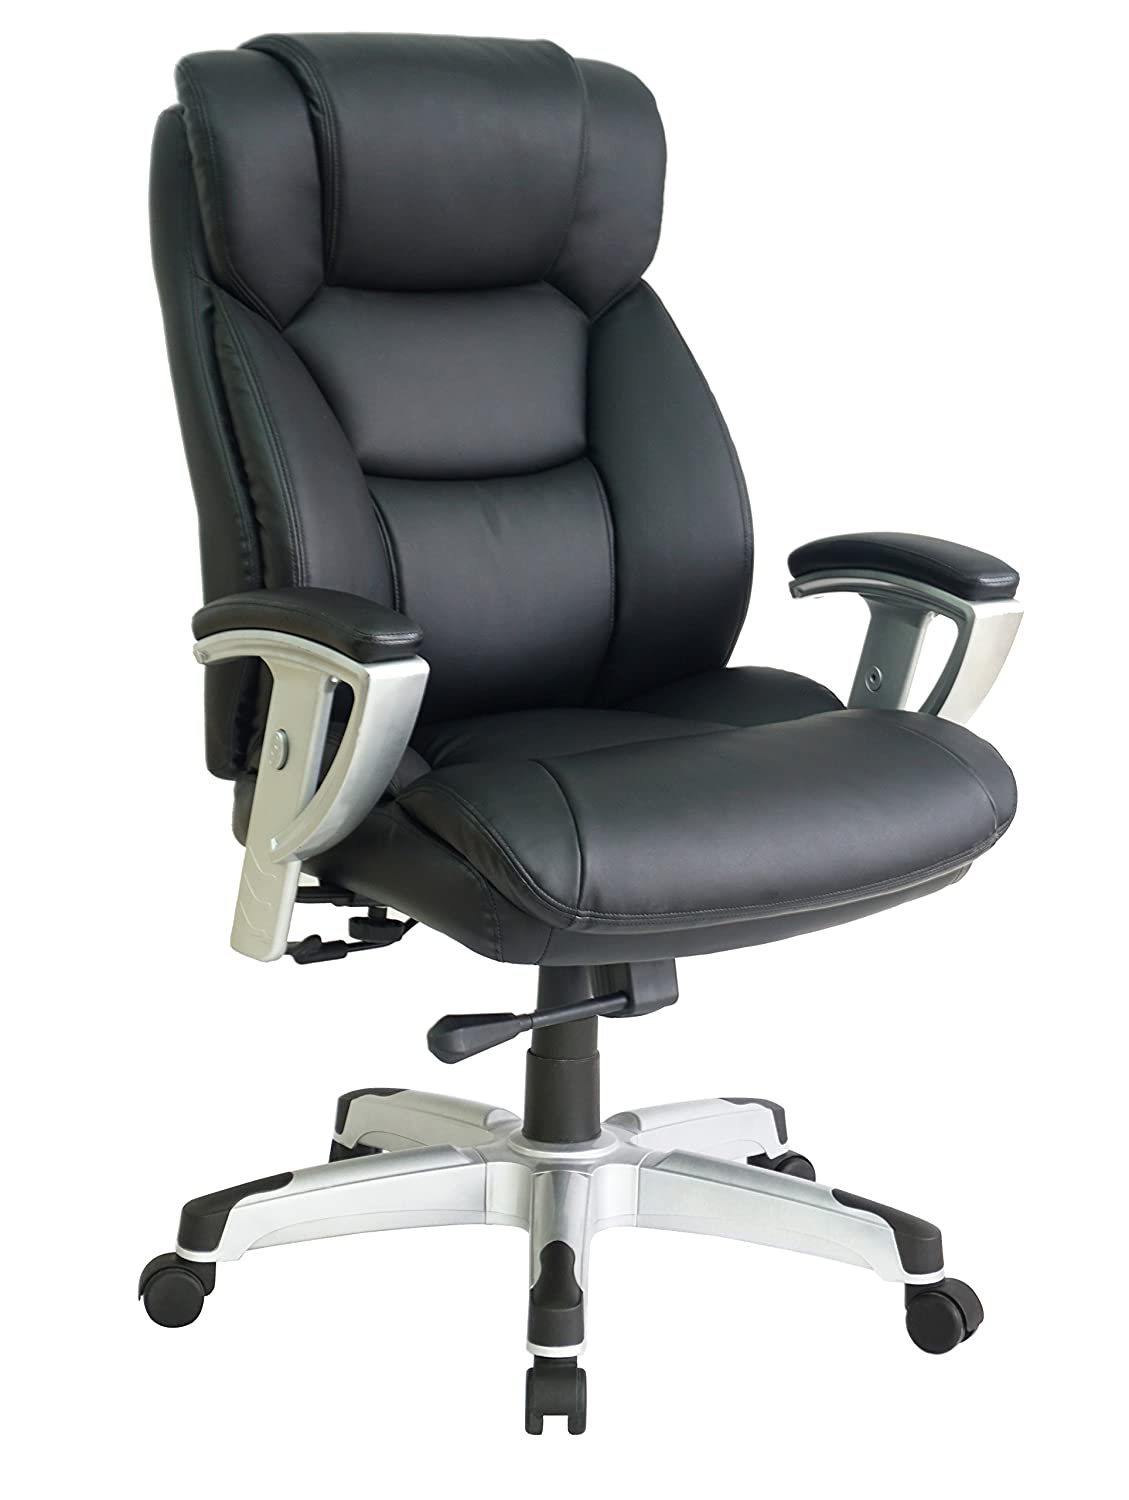 Amazon.com: Office Factor New Big And Tall Black Executive Office Chair  Bonded Leather Extra Padded Rated To 400 Pounds Five Year Limited Warranty  ...